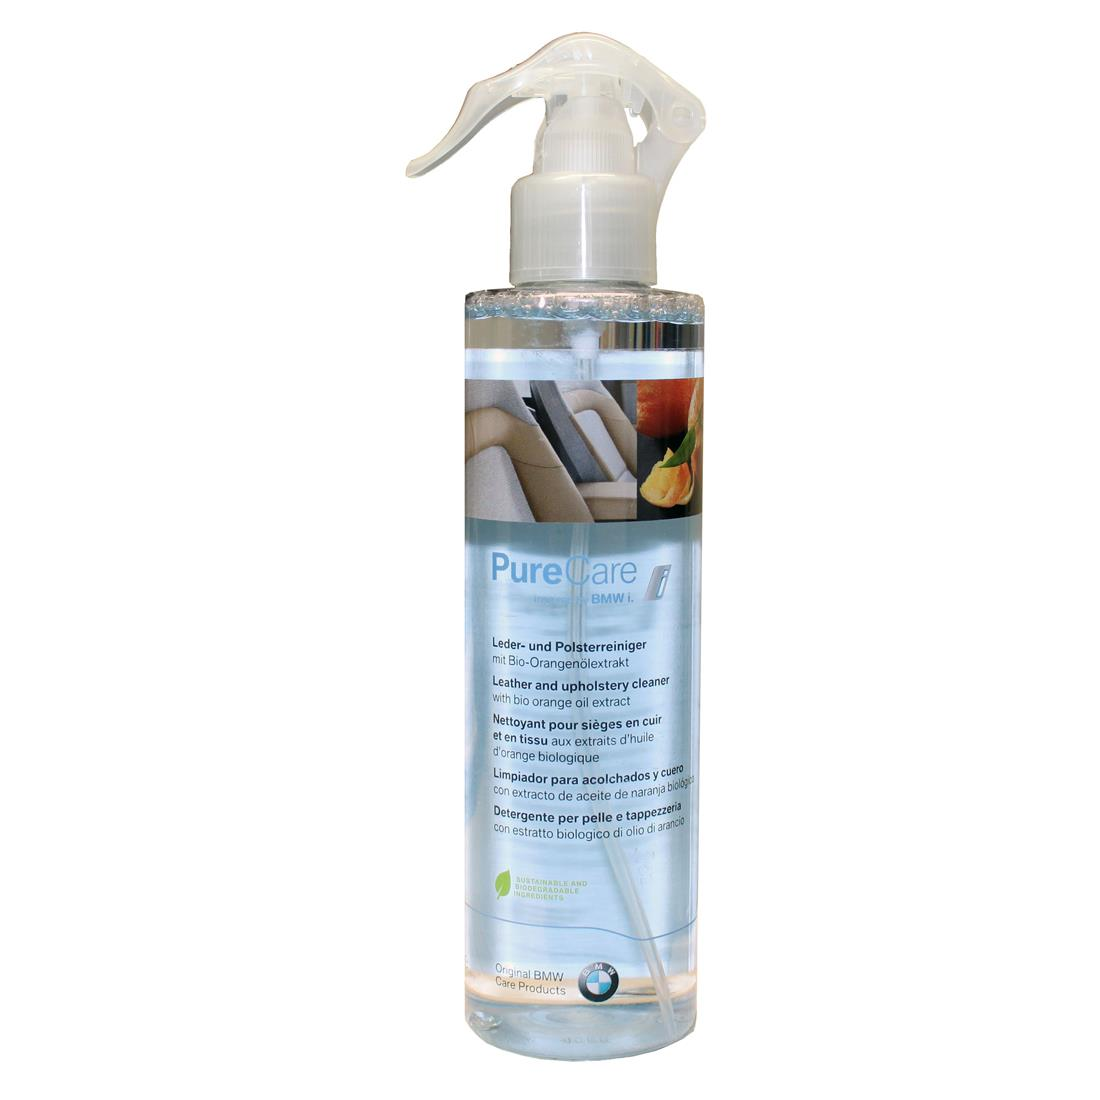 leather sofa cleaning shampoo laura ashley reviews uk shopbmwusa bmw purecare and upholstery cleaner